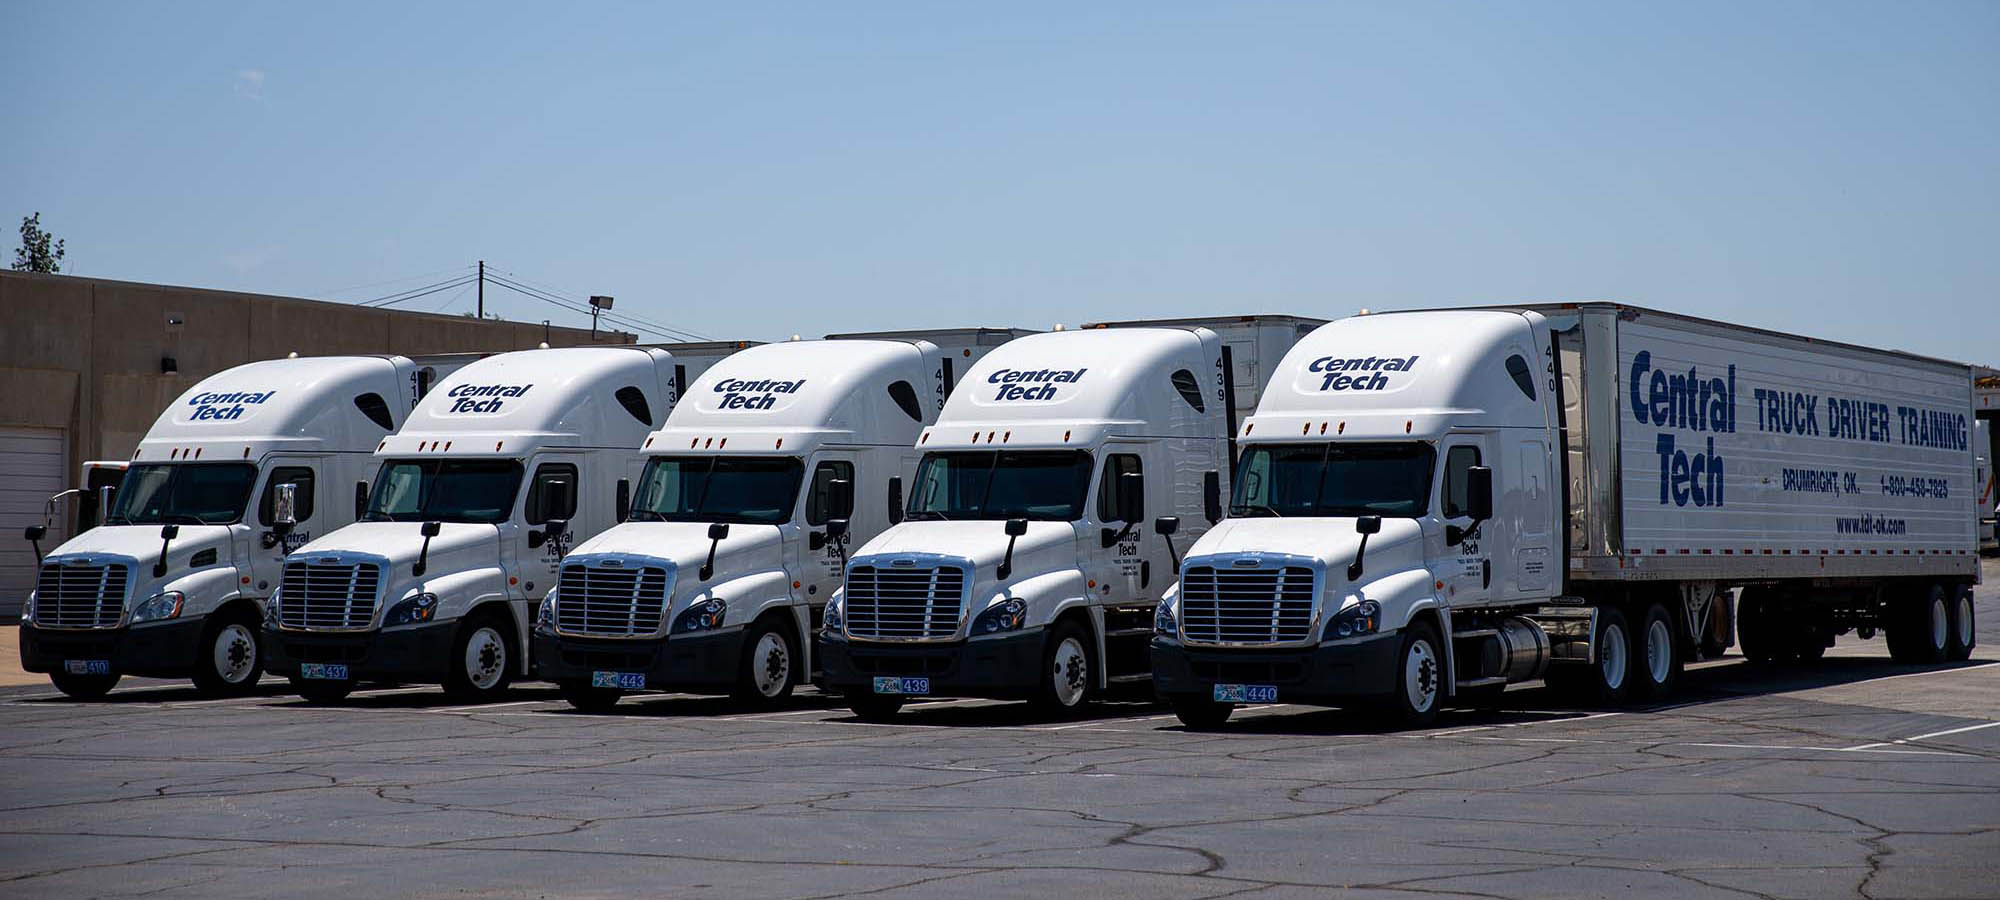 Commercial Driver's License - Are you ready to earn yours?